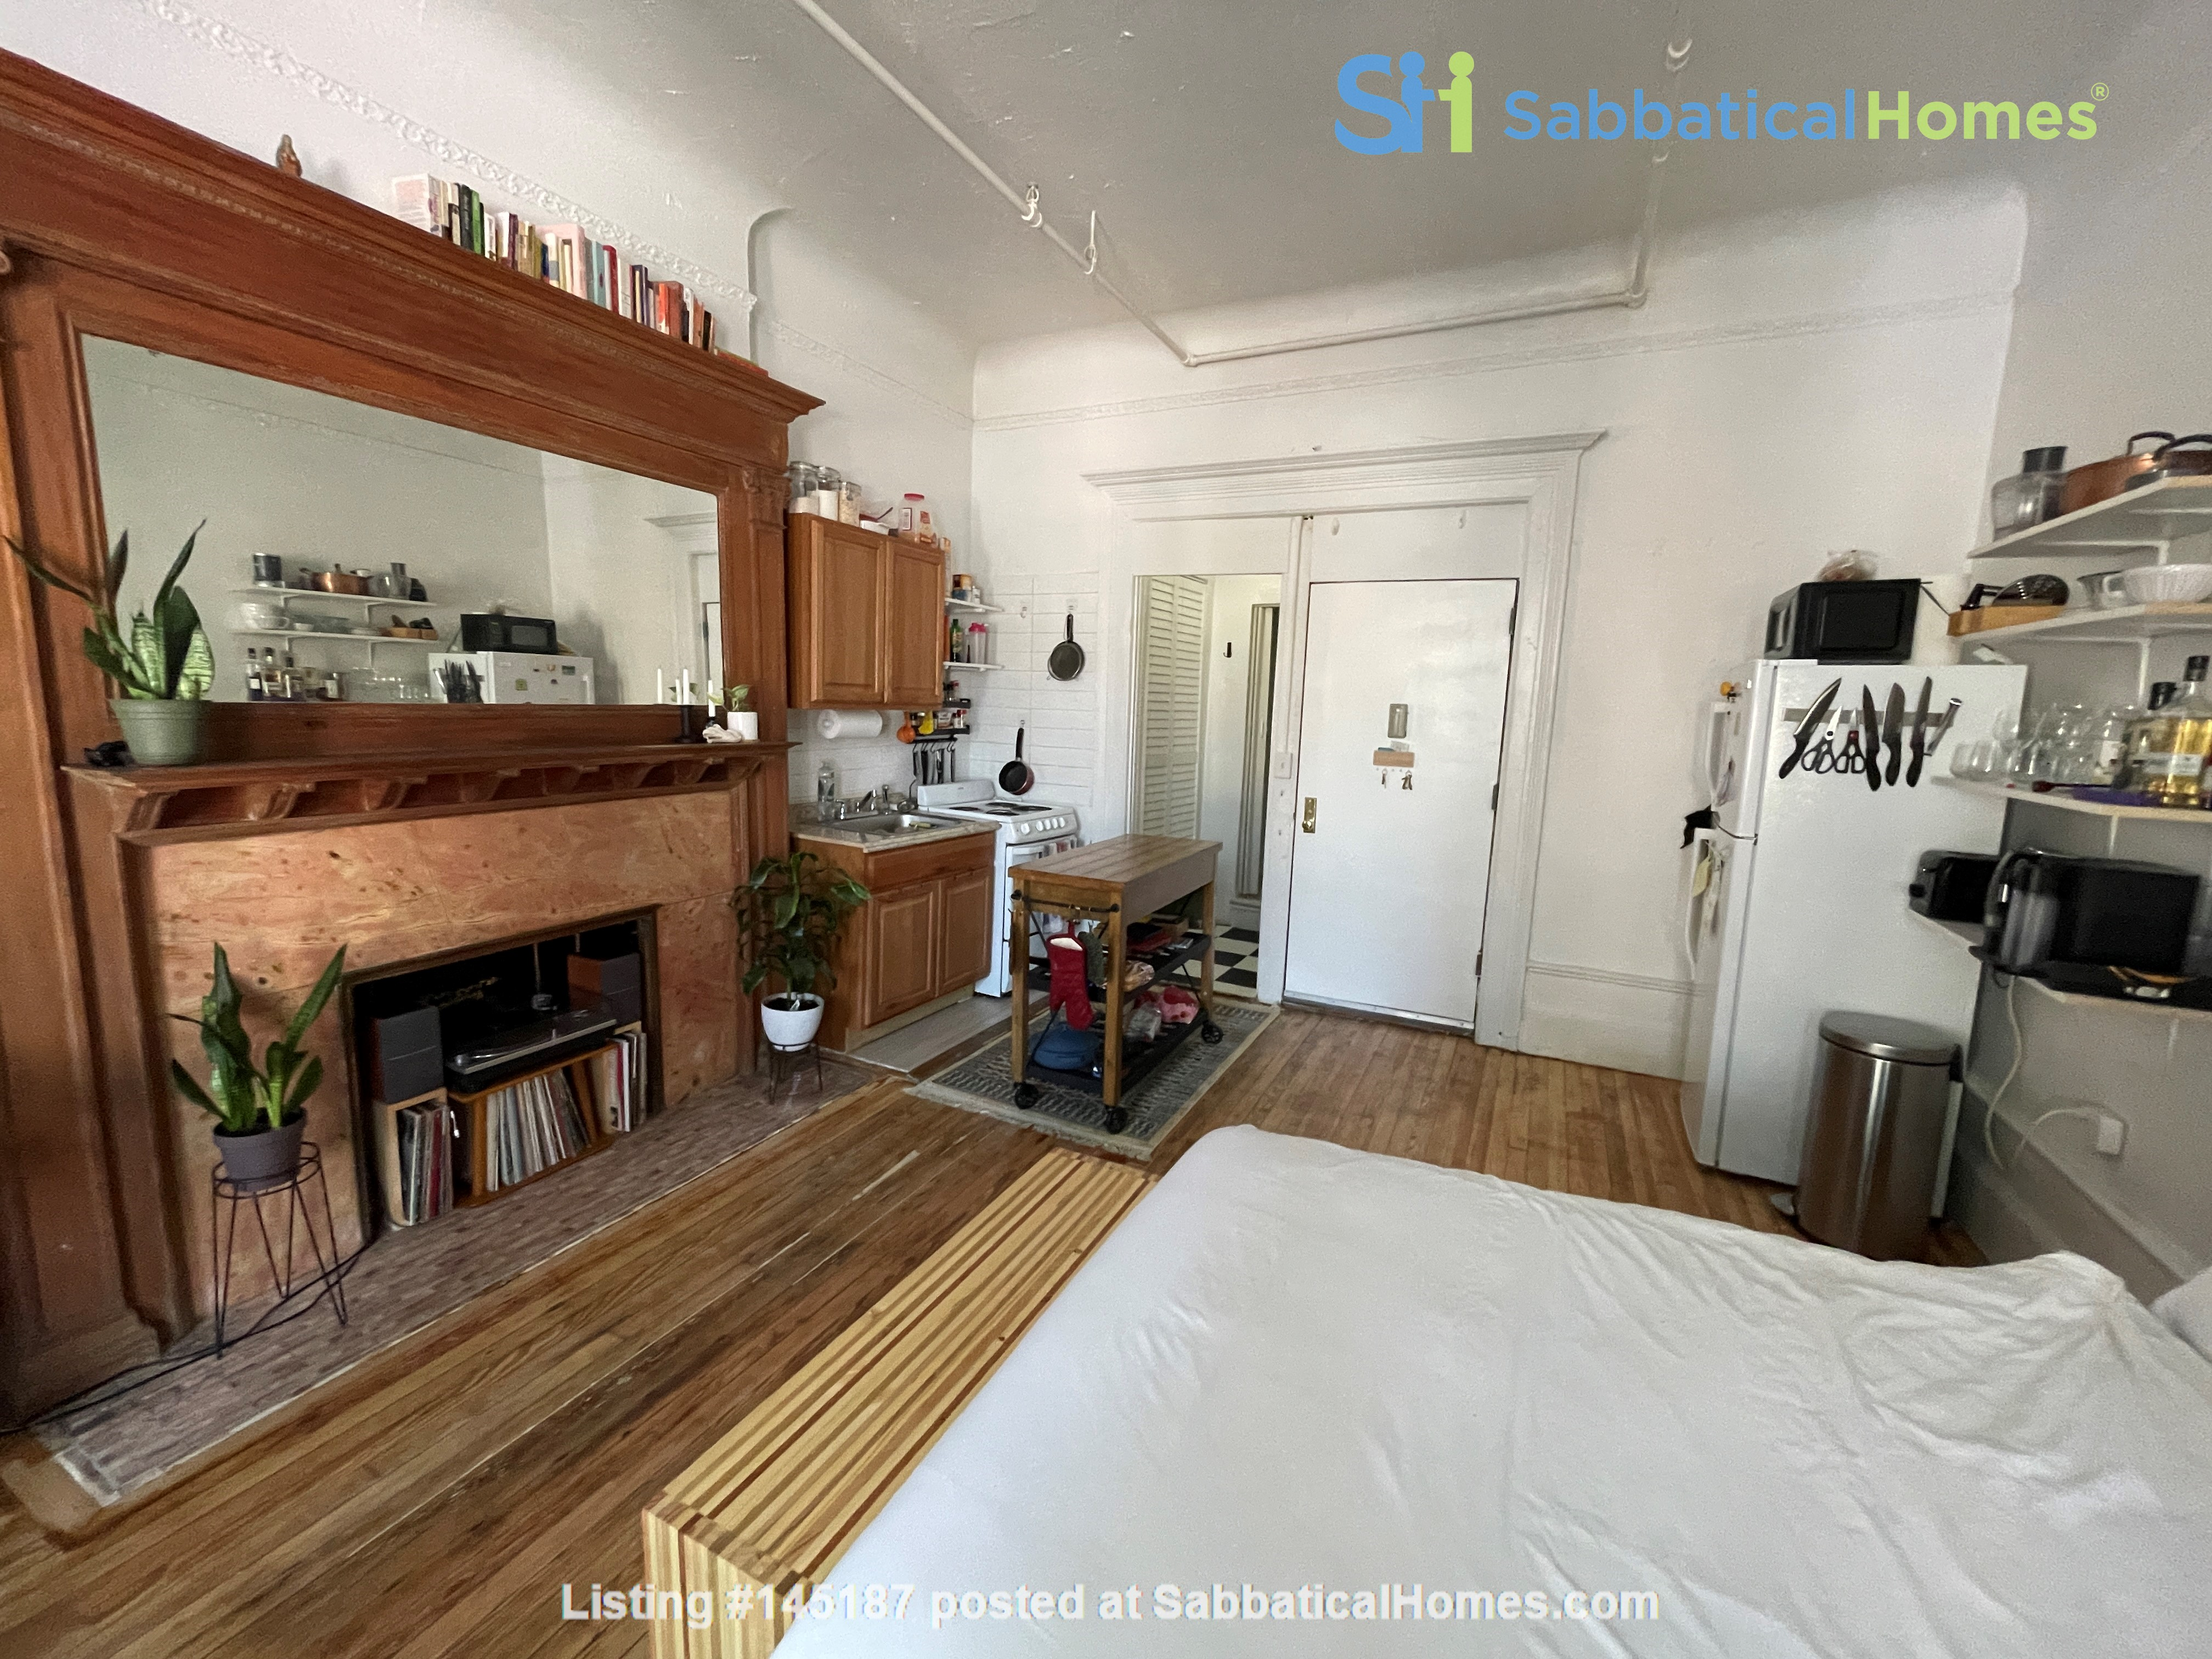 Historic South Harlem Studio with Balcony, short walk to Central Park! Home Rental in New York 2